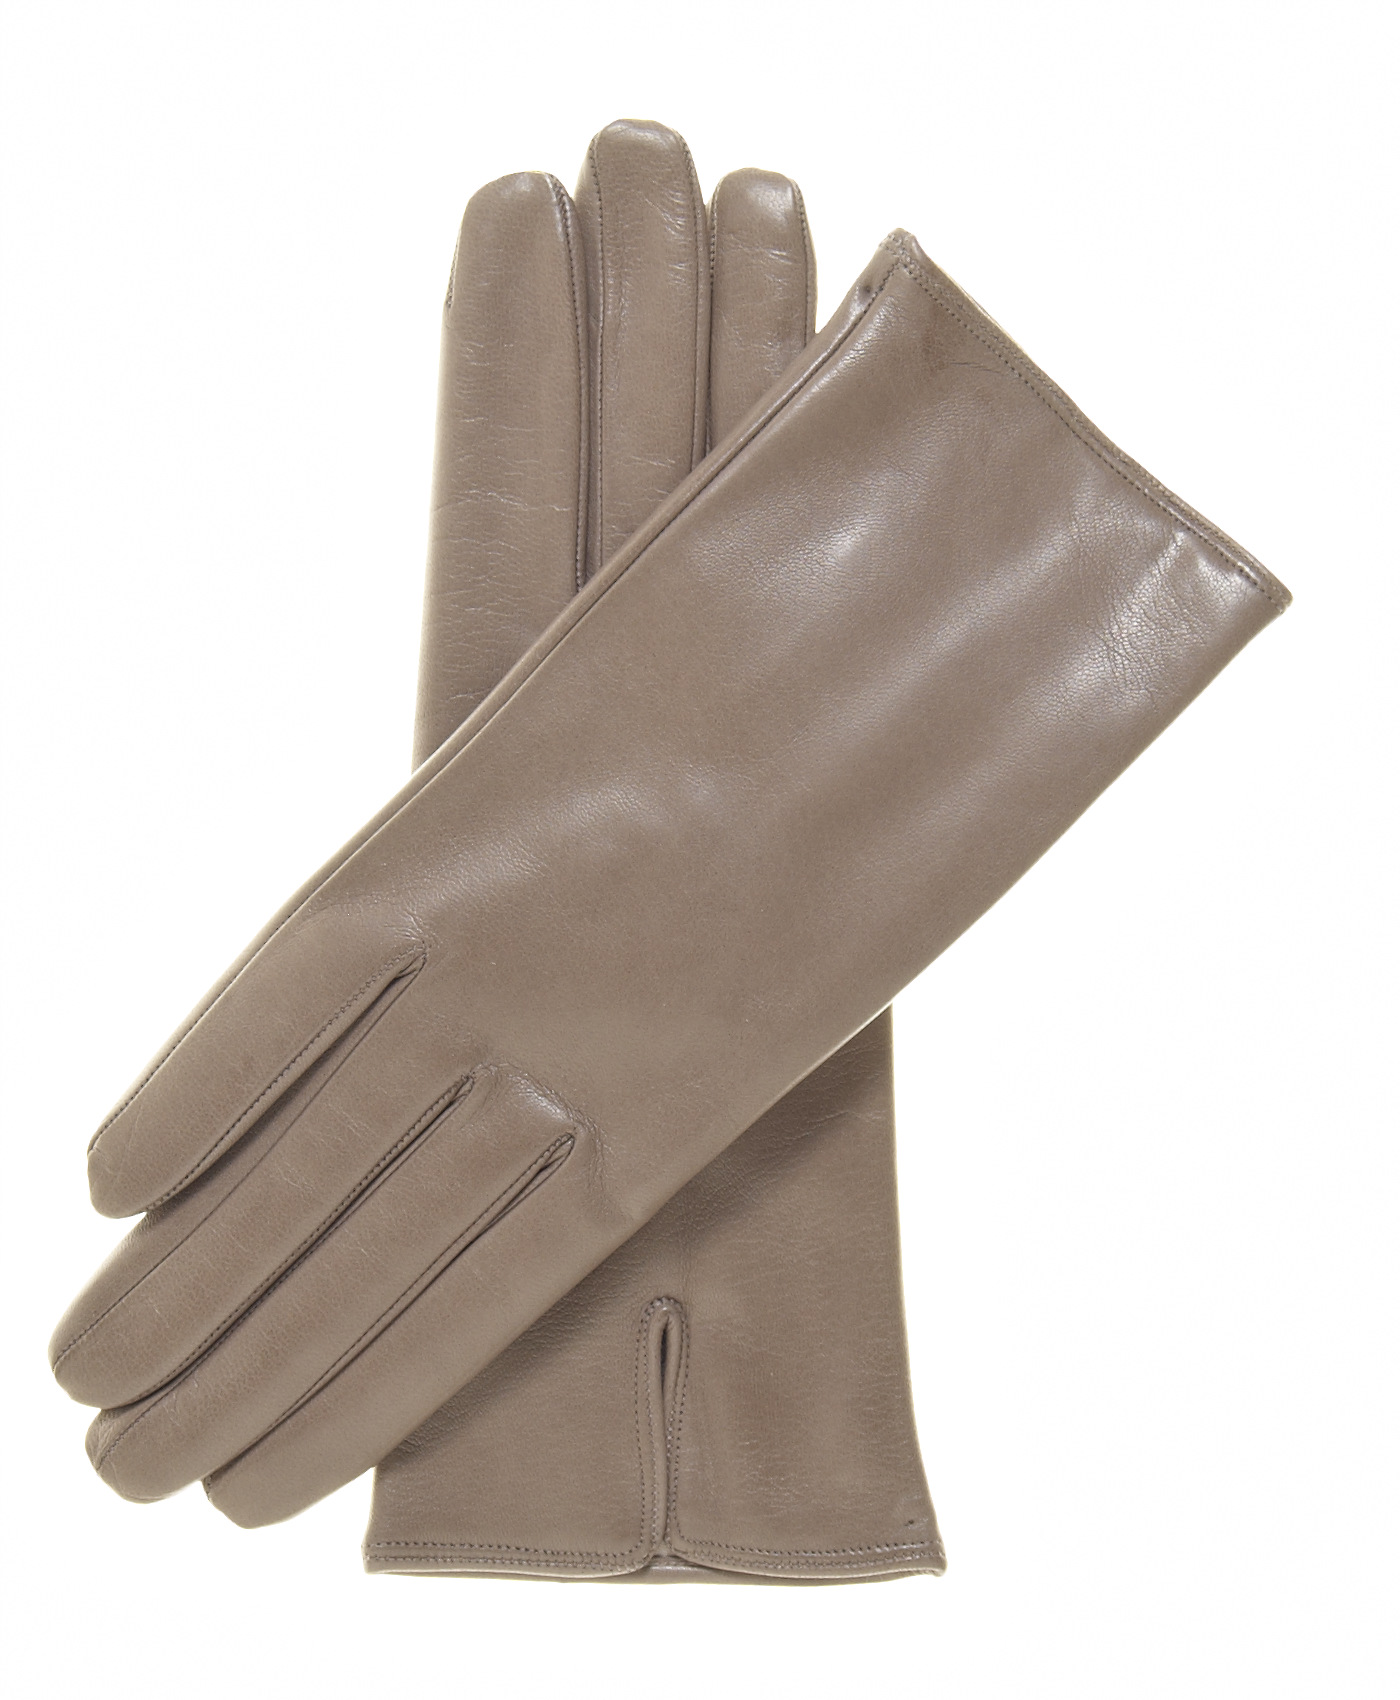 Women's Gloves black · taupe ... PDTOCNZ